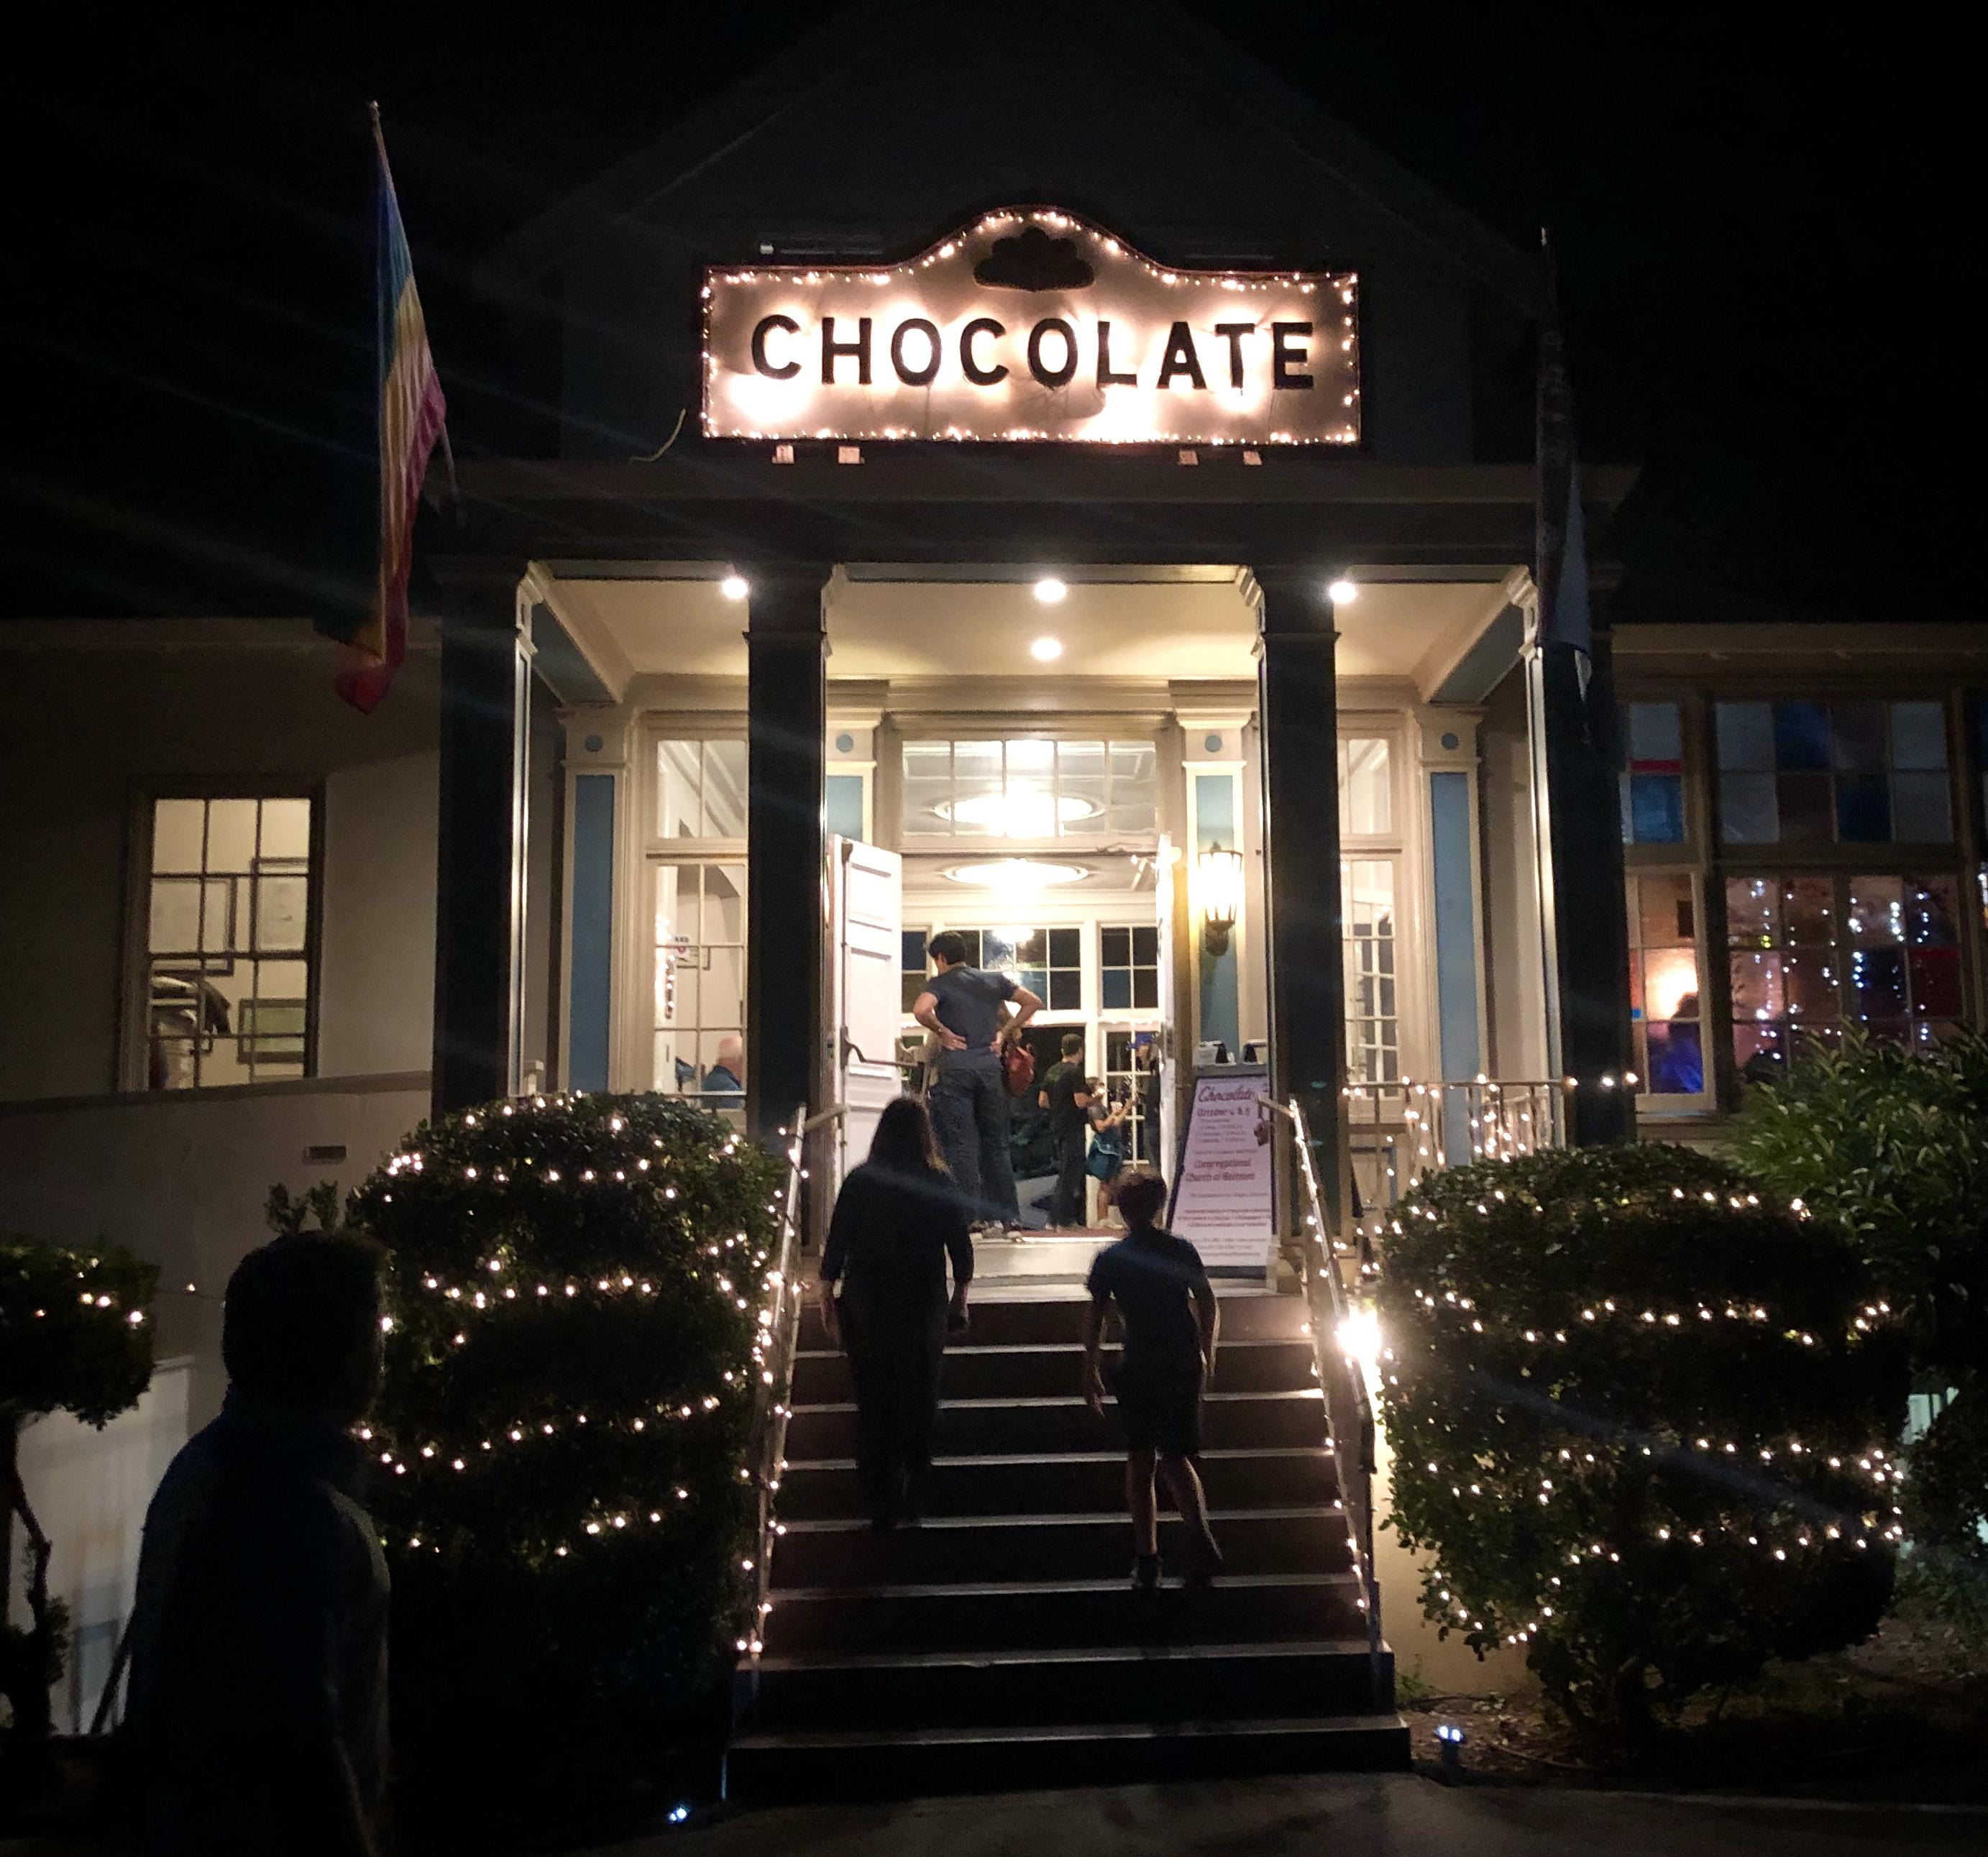 The Chocolate Festival is too sweet to ignore